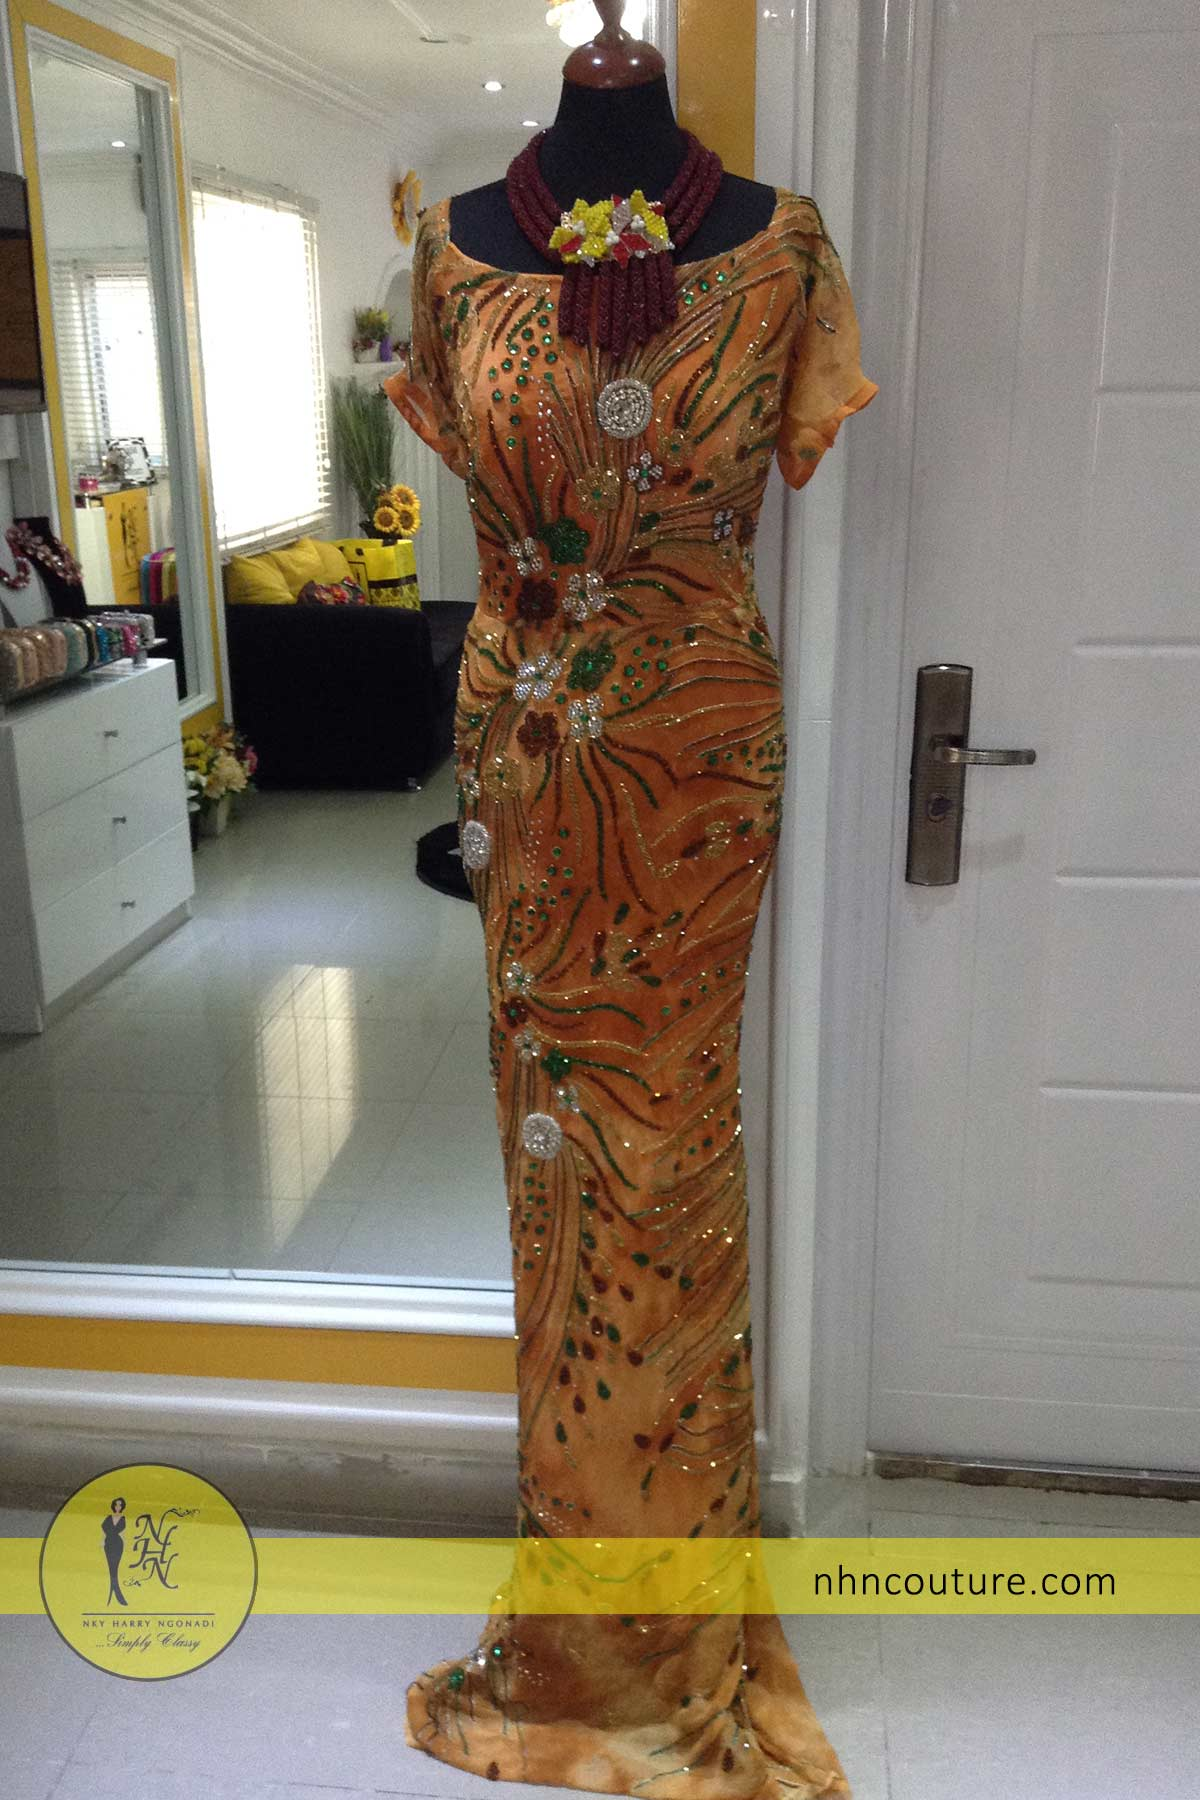 ready-to-wear_asoebi_nigerian-traditional-attire_sequined-orange-lace_NHN